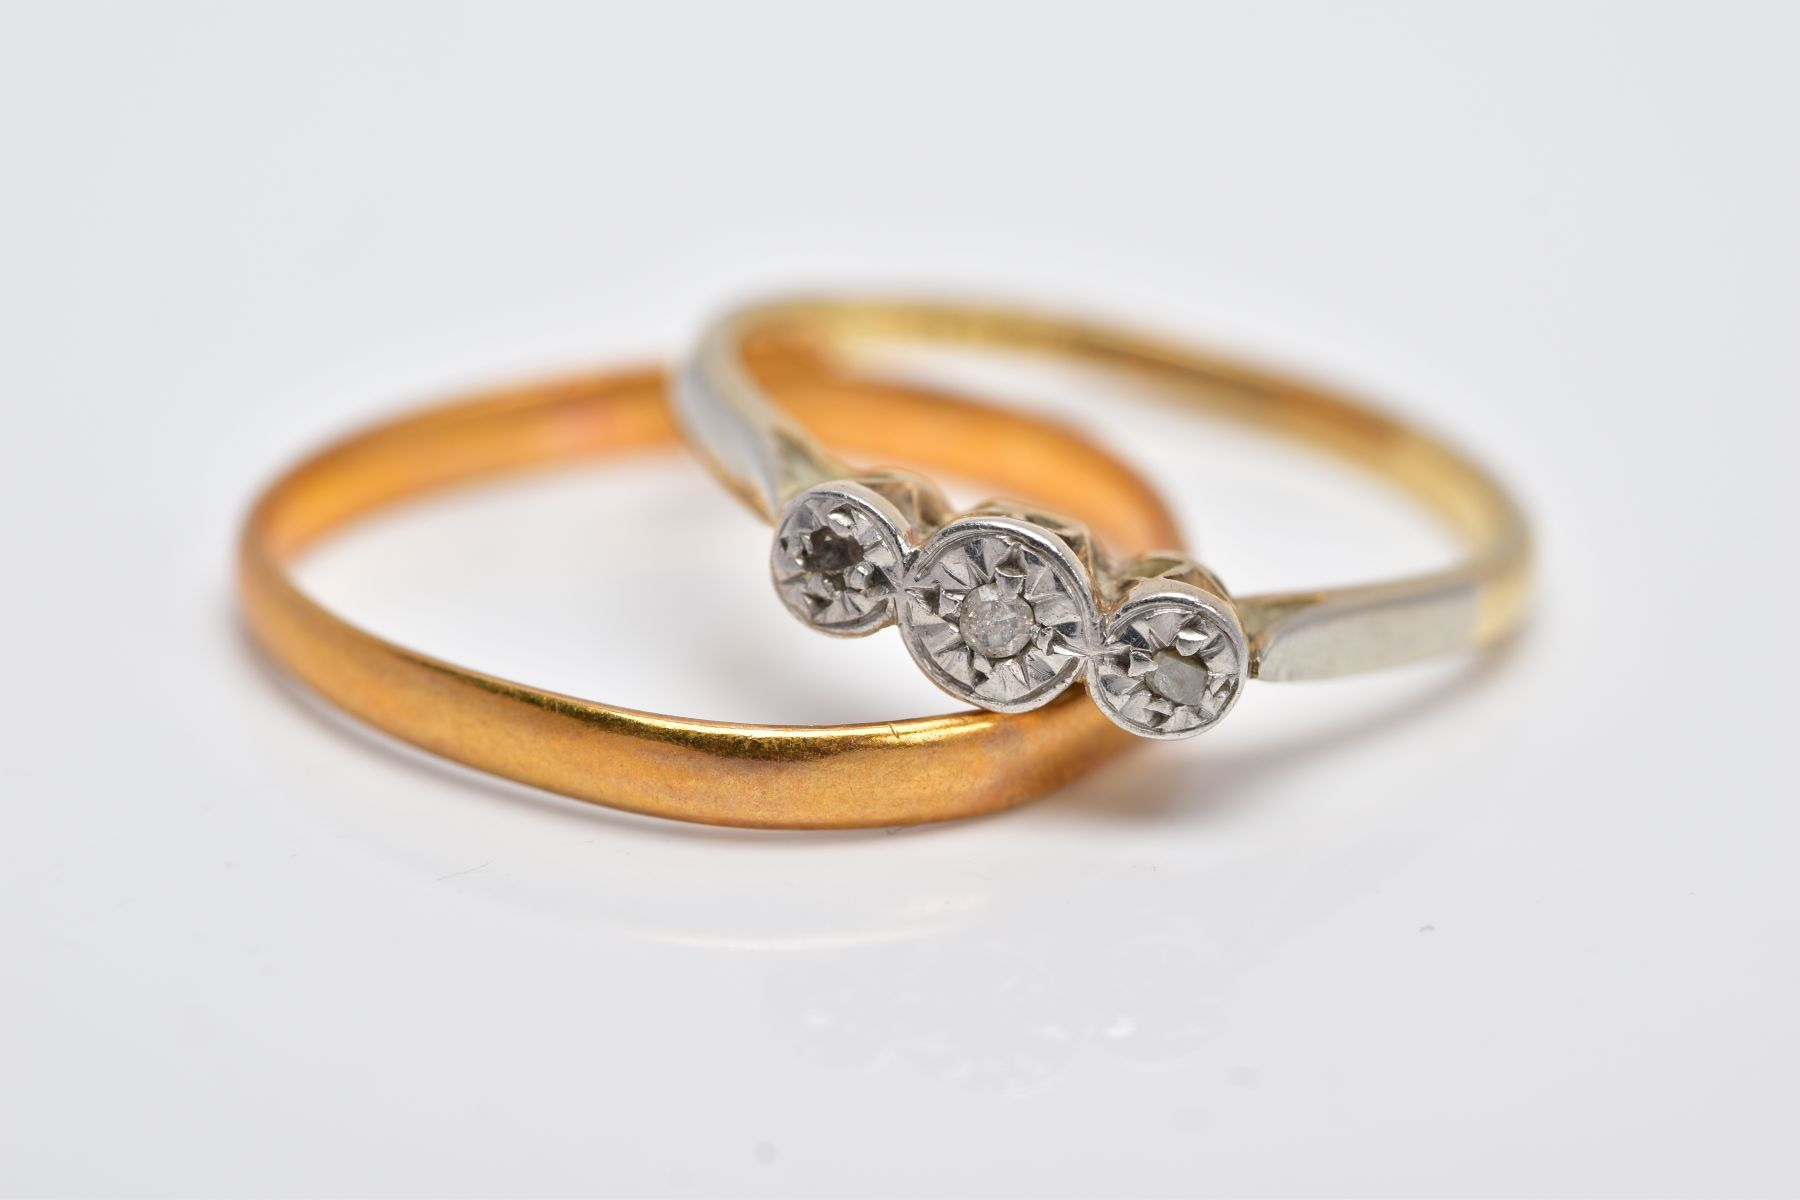 A YELLLOW METAL THREE STONE DIAMOND RING AND A 22CT GOLD BAND, the diamond ring centring on an